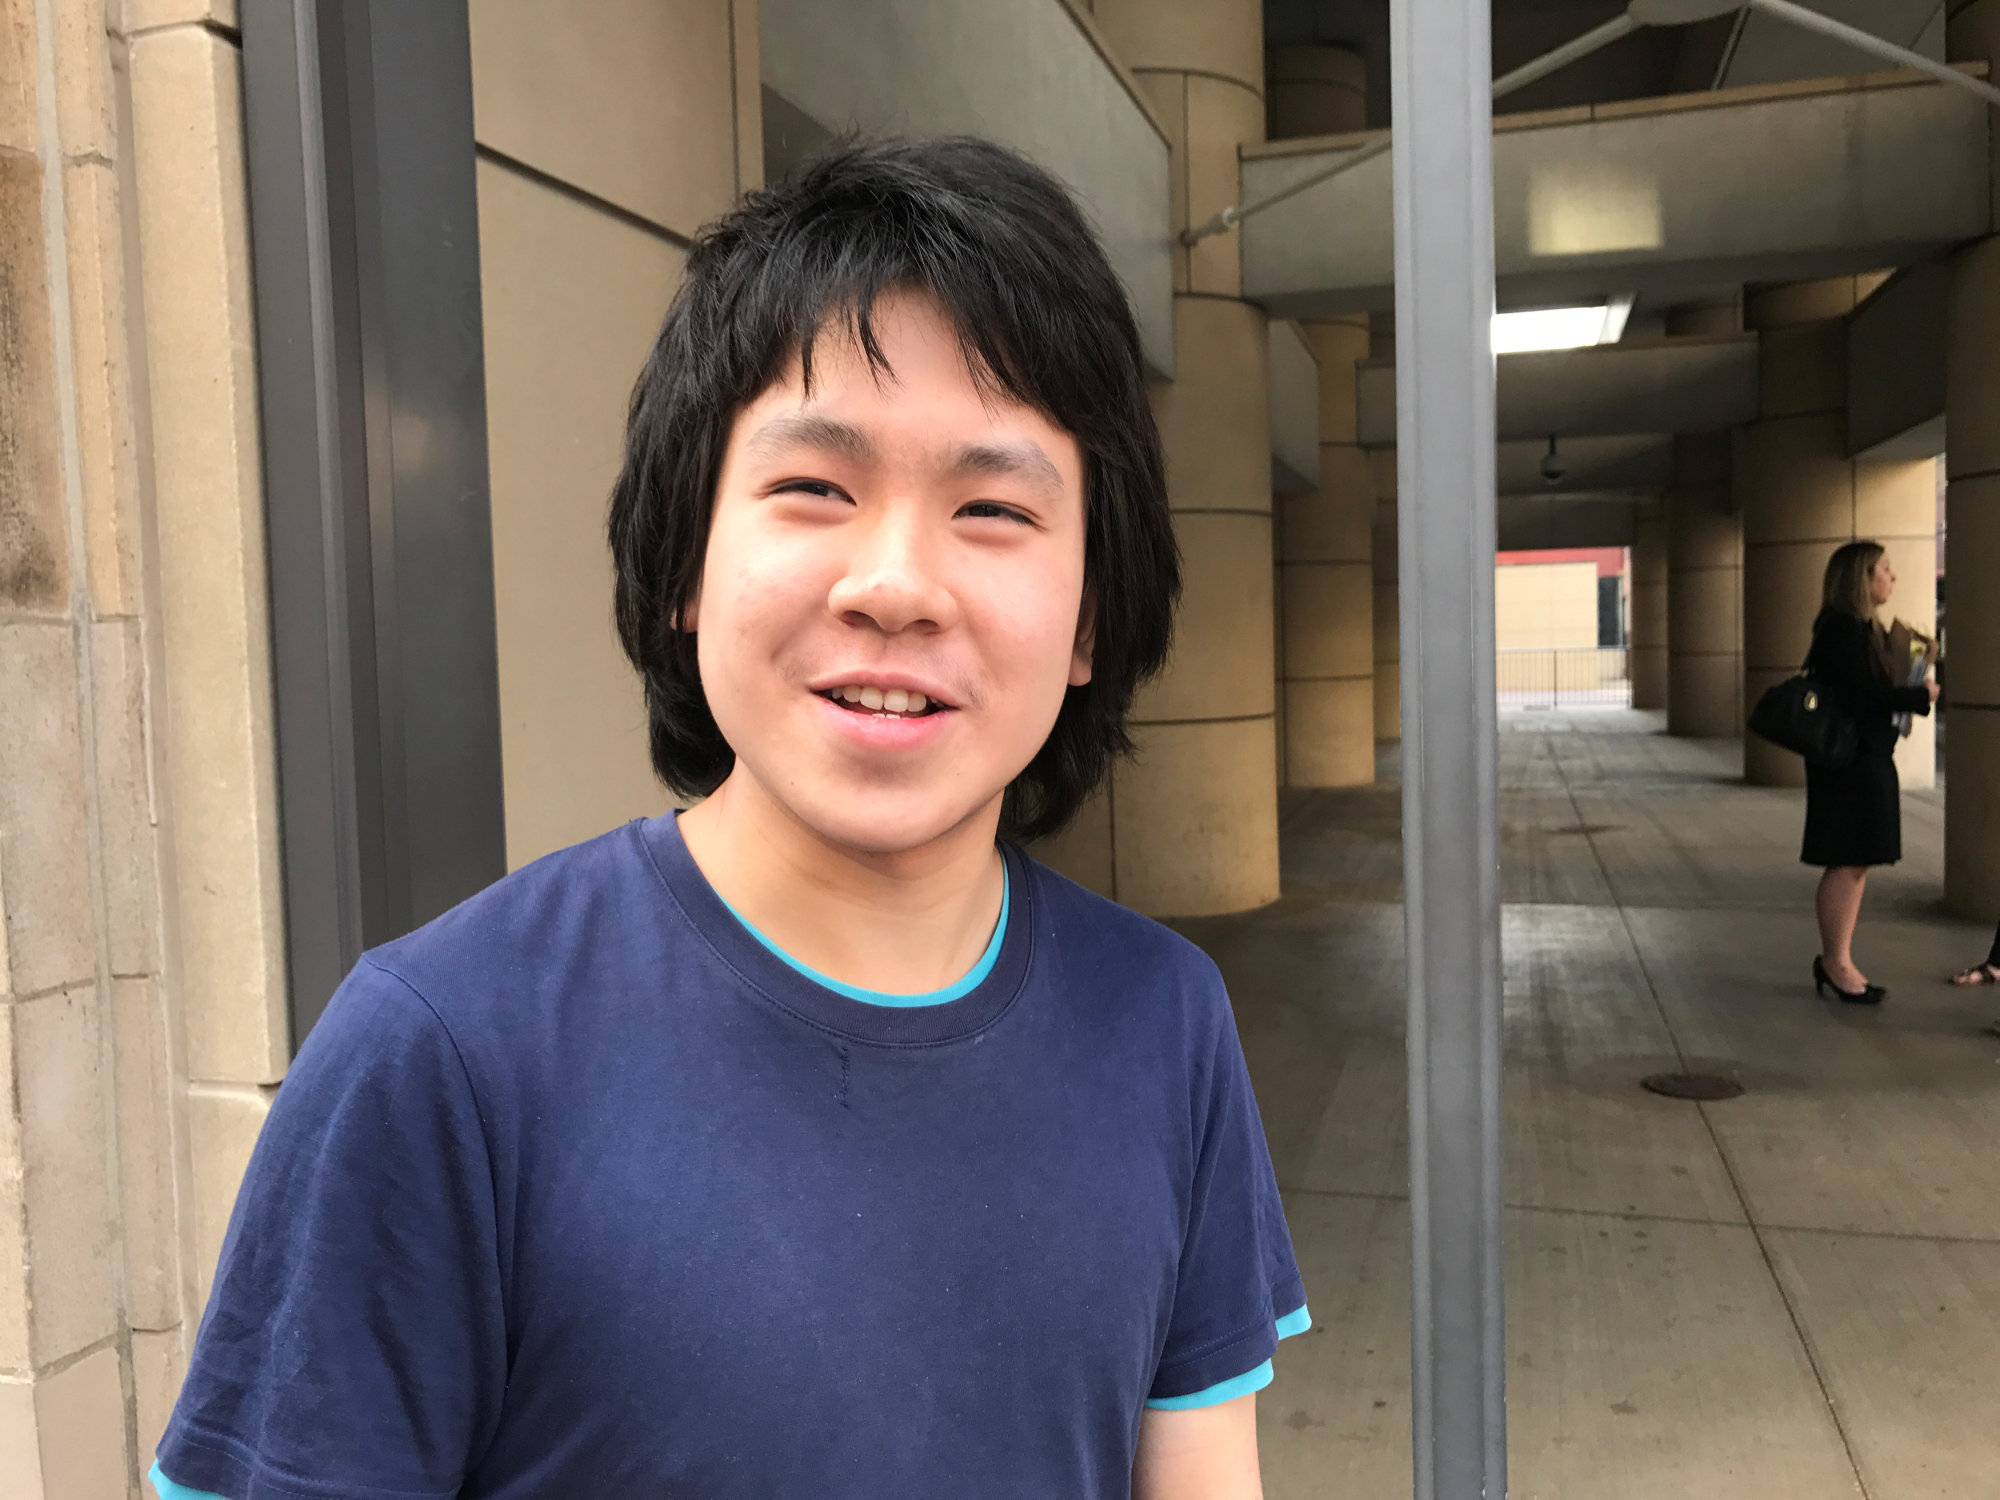 Amos Yee stands outside the United Sates Citizenship and Immigration Services offices after his release from detention in Chicago on Tuesday. | REUTERS